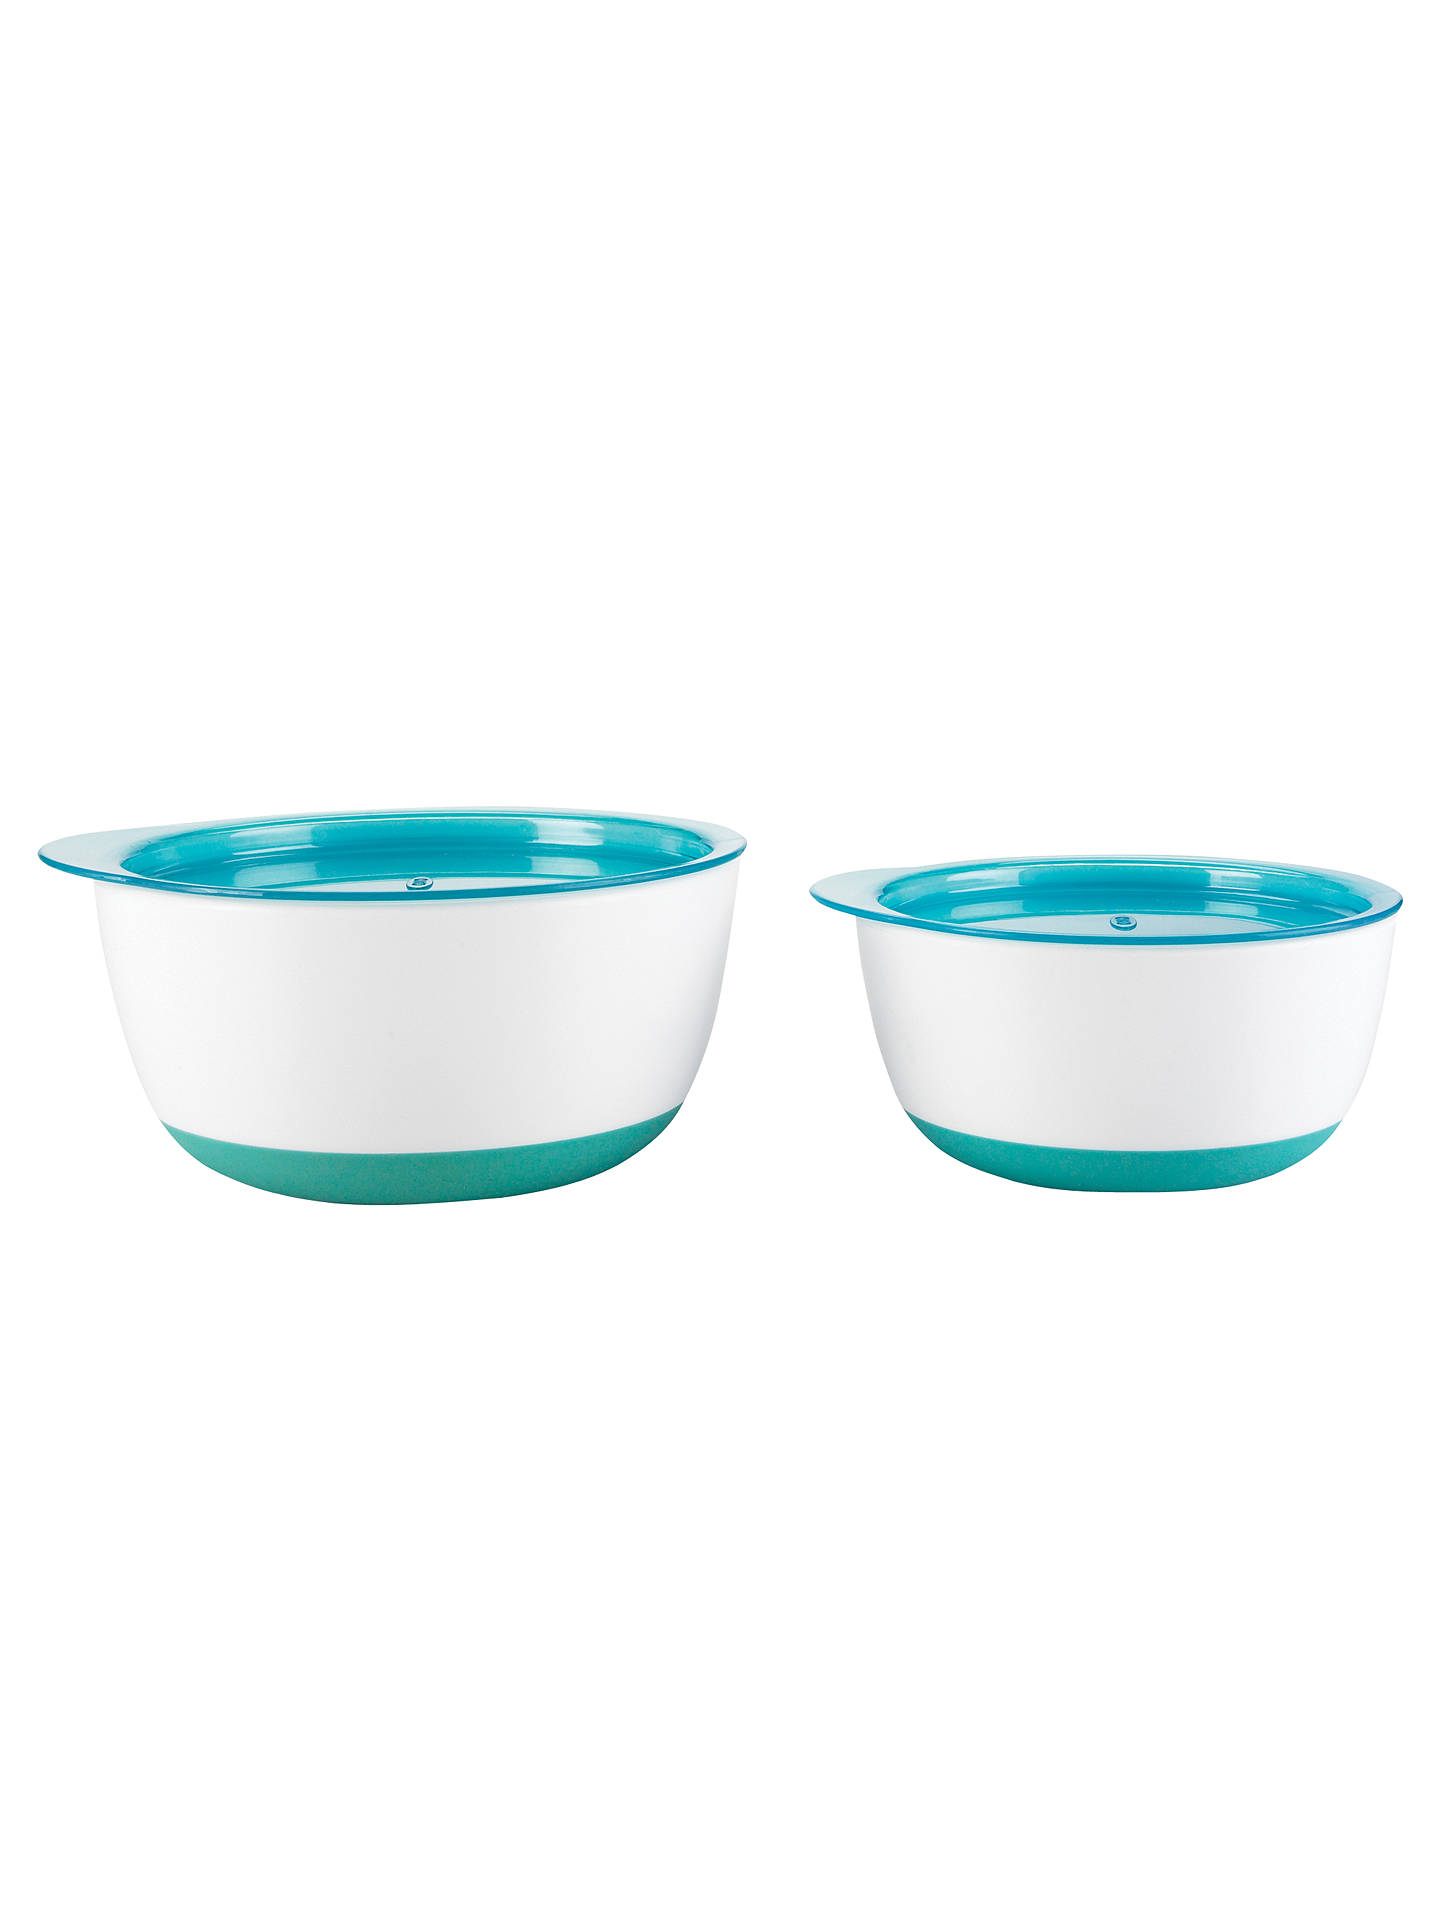 Buy OXO Tot Large and Small Bowl Set, Blue, One size Online at johnlewis.com